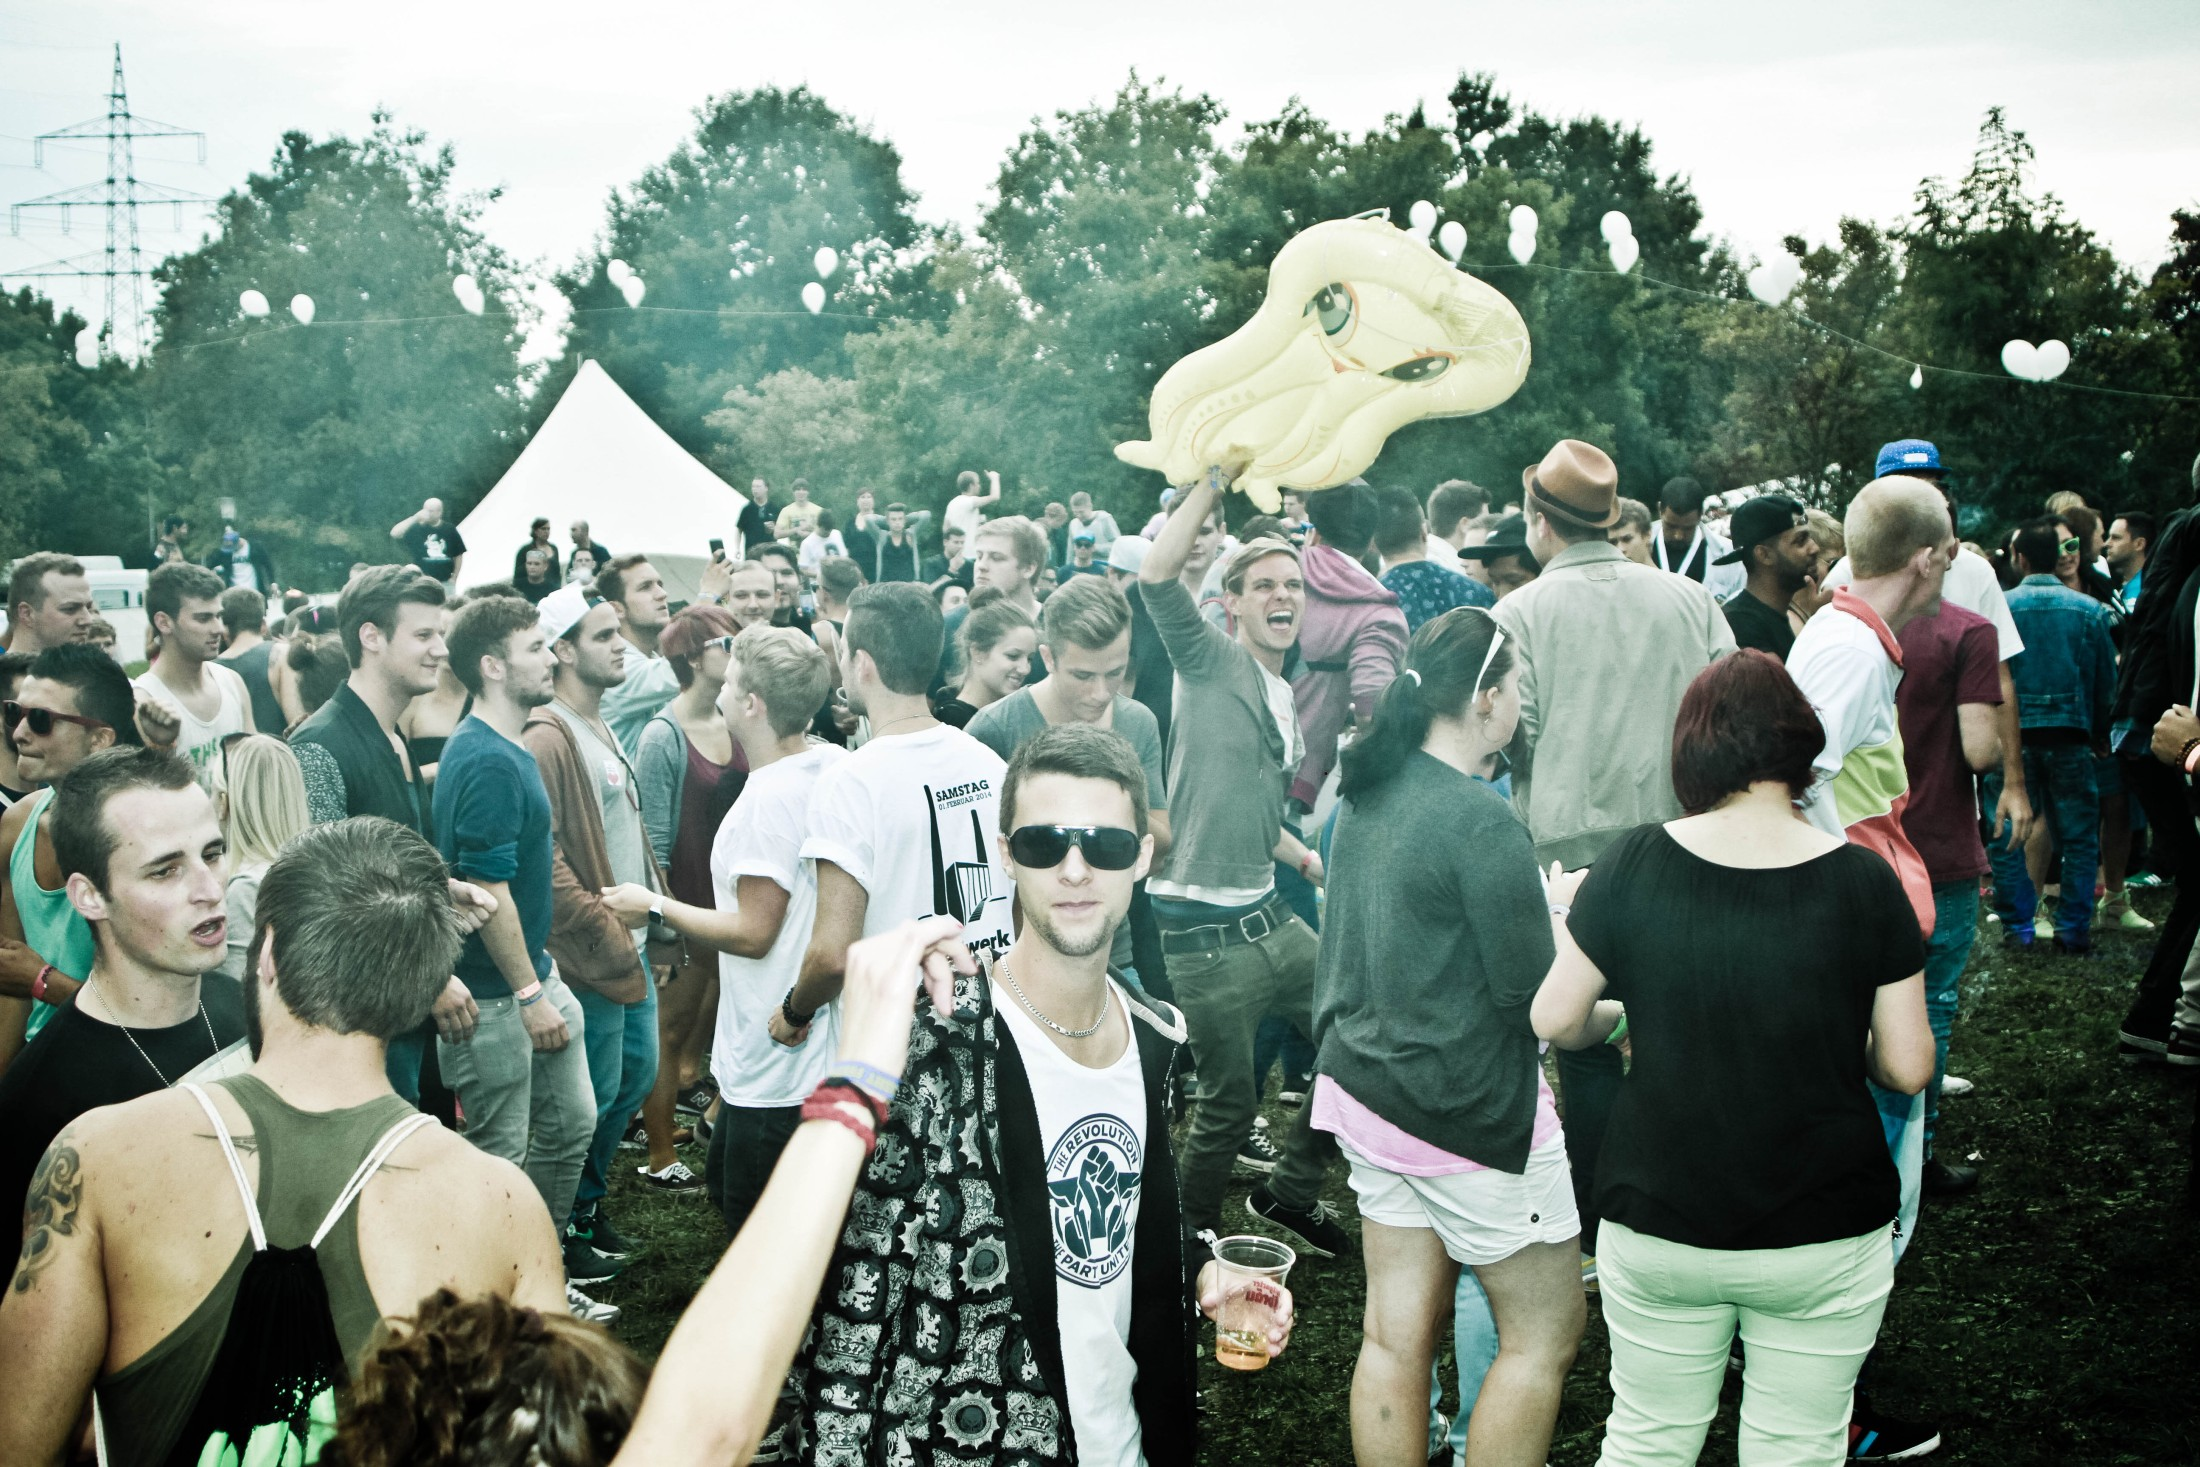 Bilder vom Day & Night Festival in Sindelfingen